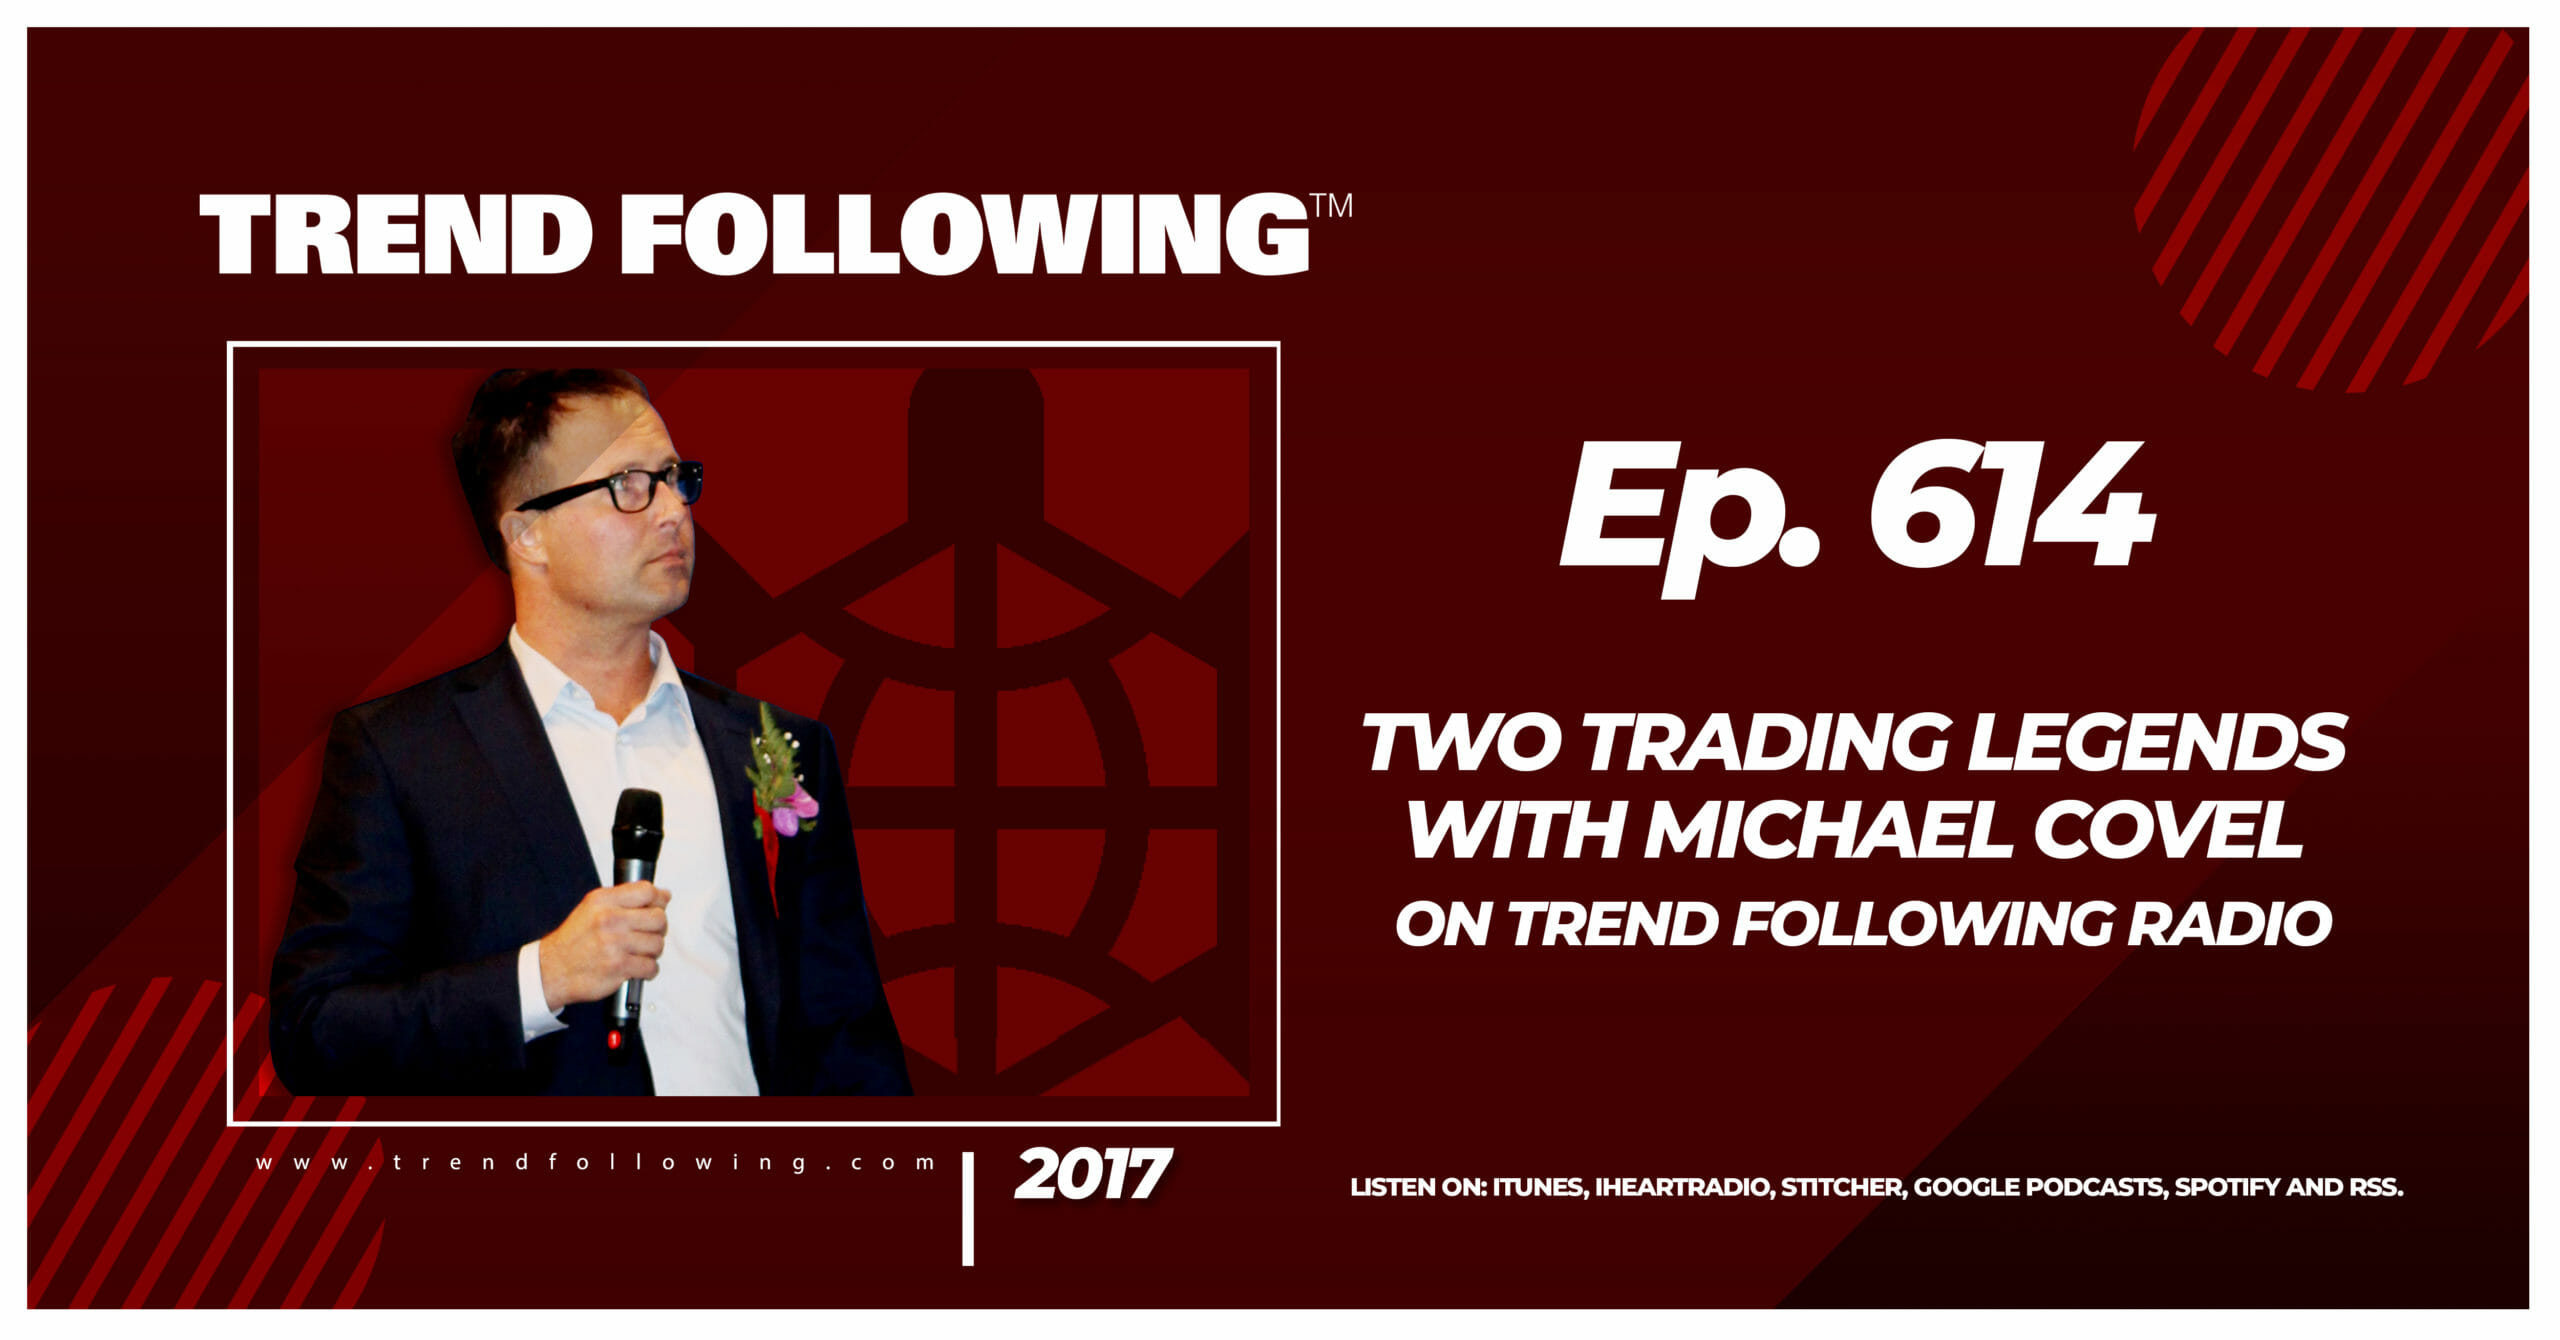 Two Trading Legends with Michael Covel